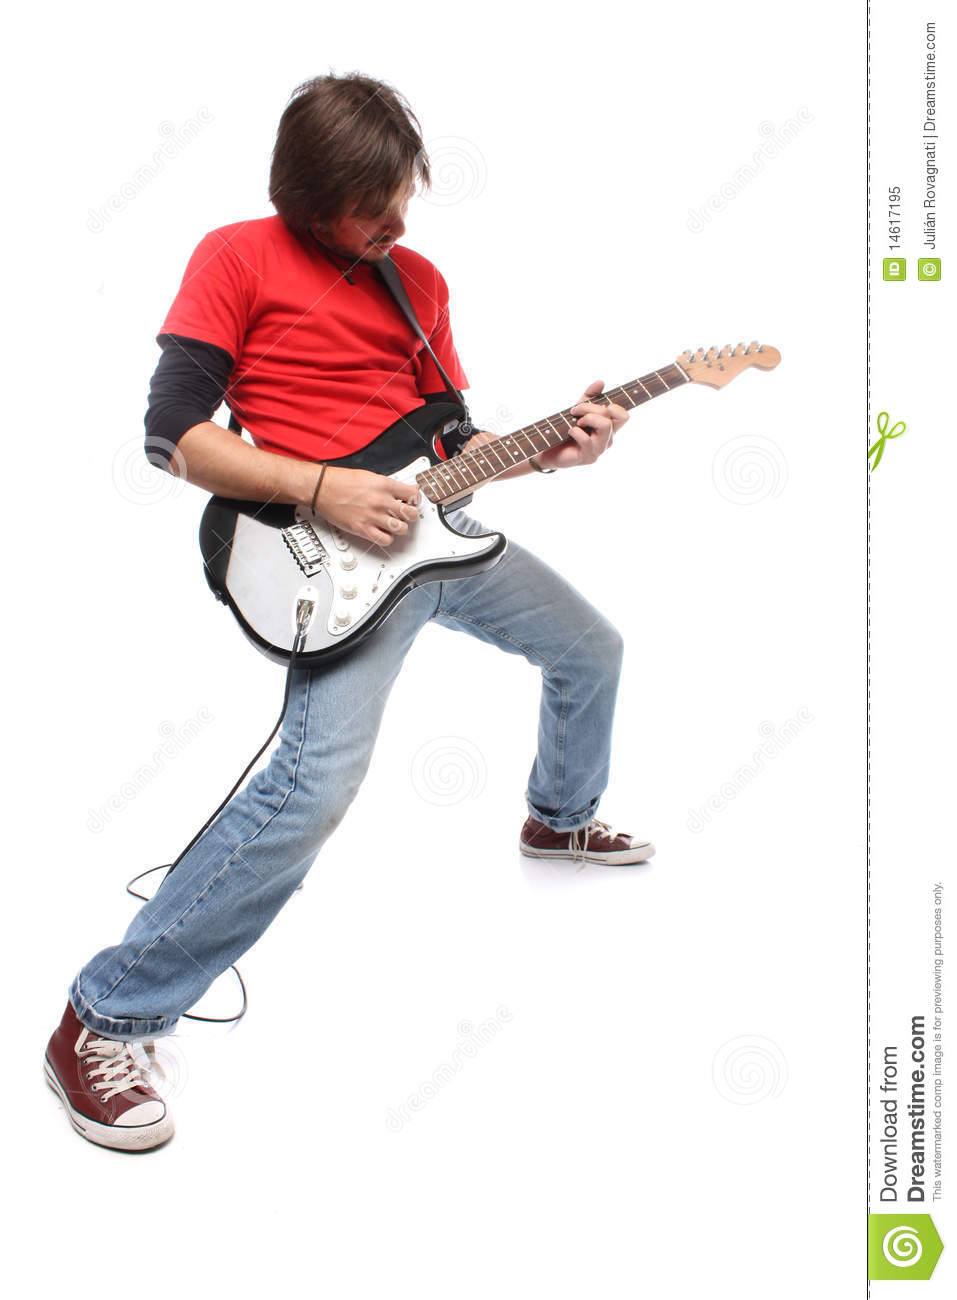 Guitar Player Royalty Free Stock Photo - Image: 14617195